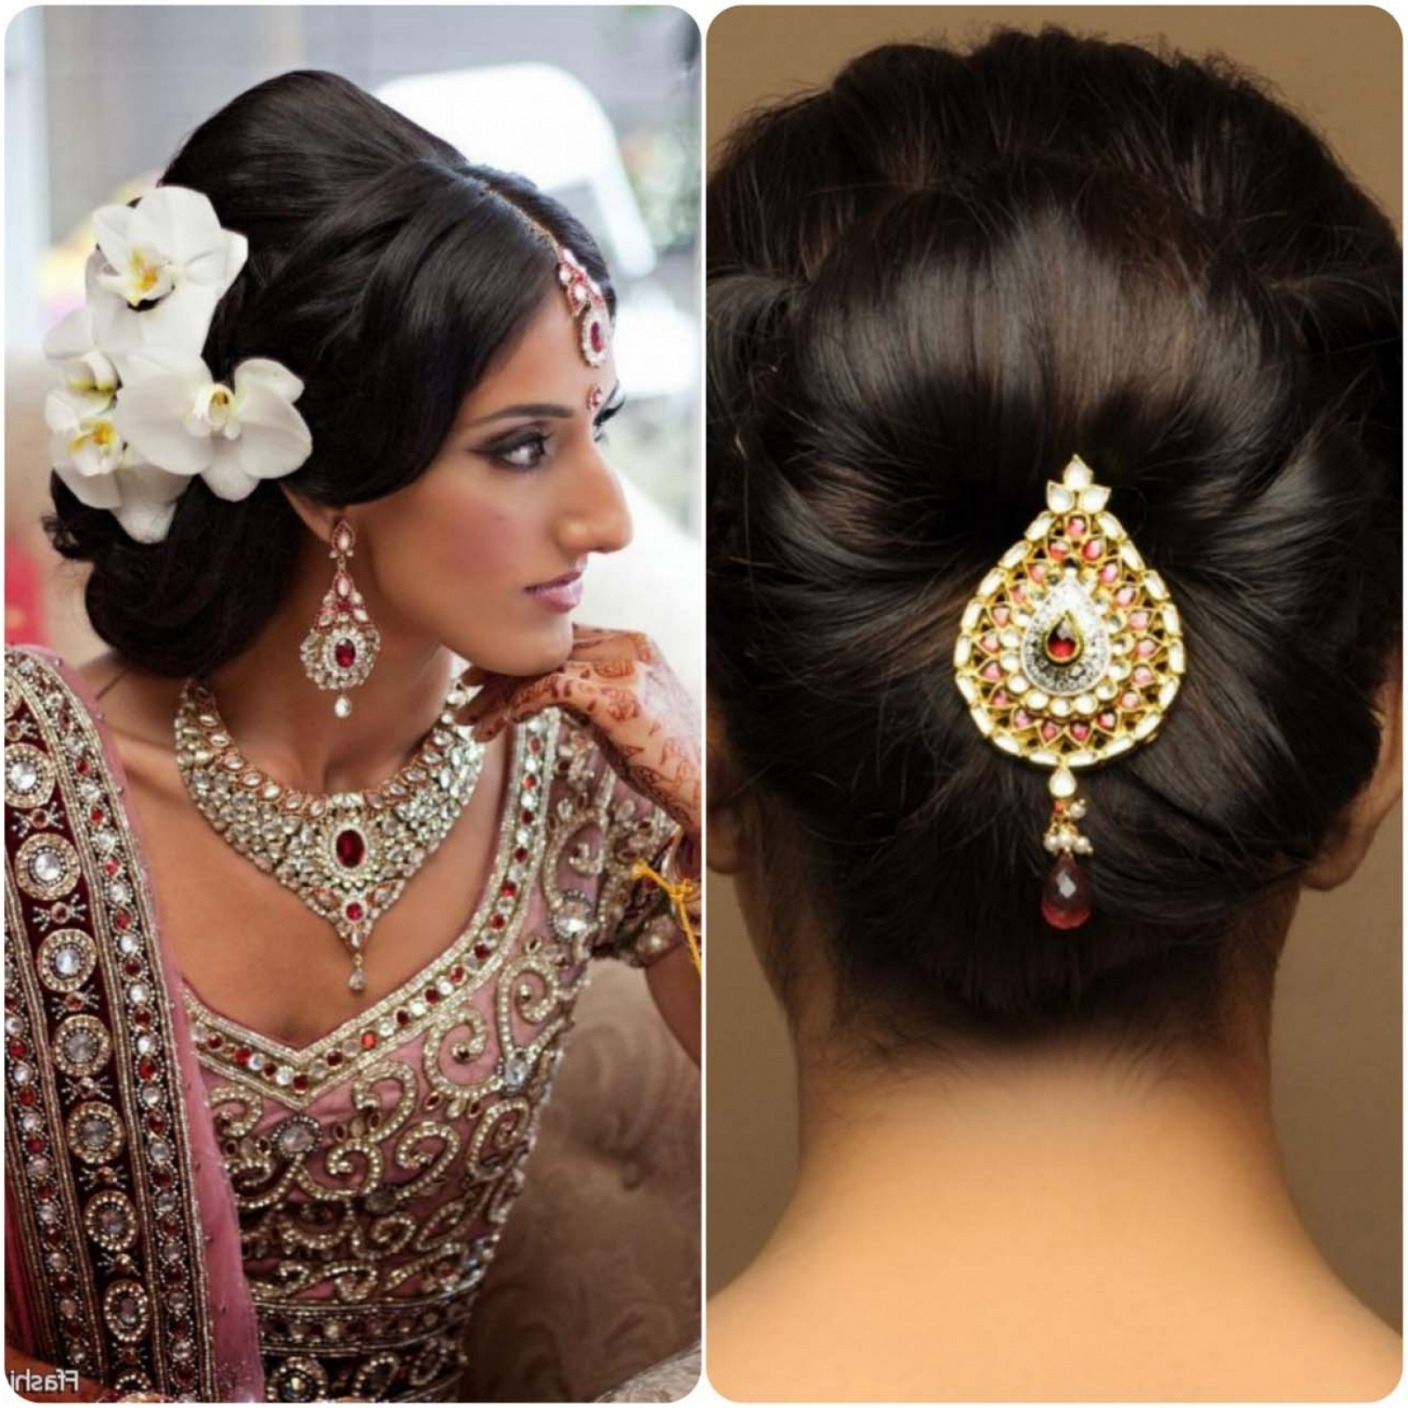 Well Known Wedding Hairstyles For Indian Bridal Regarding Inspiration Wedding Hairstyles Indian Brides With Additional Indian (View 12 of 15)